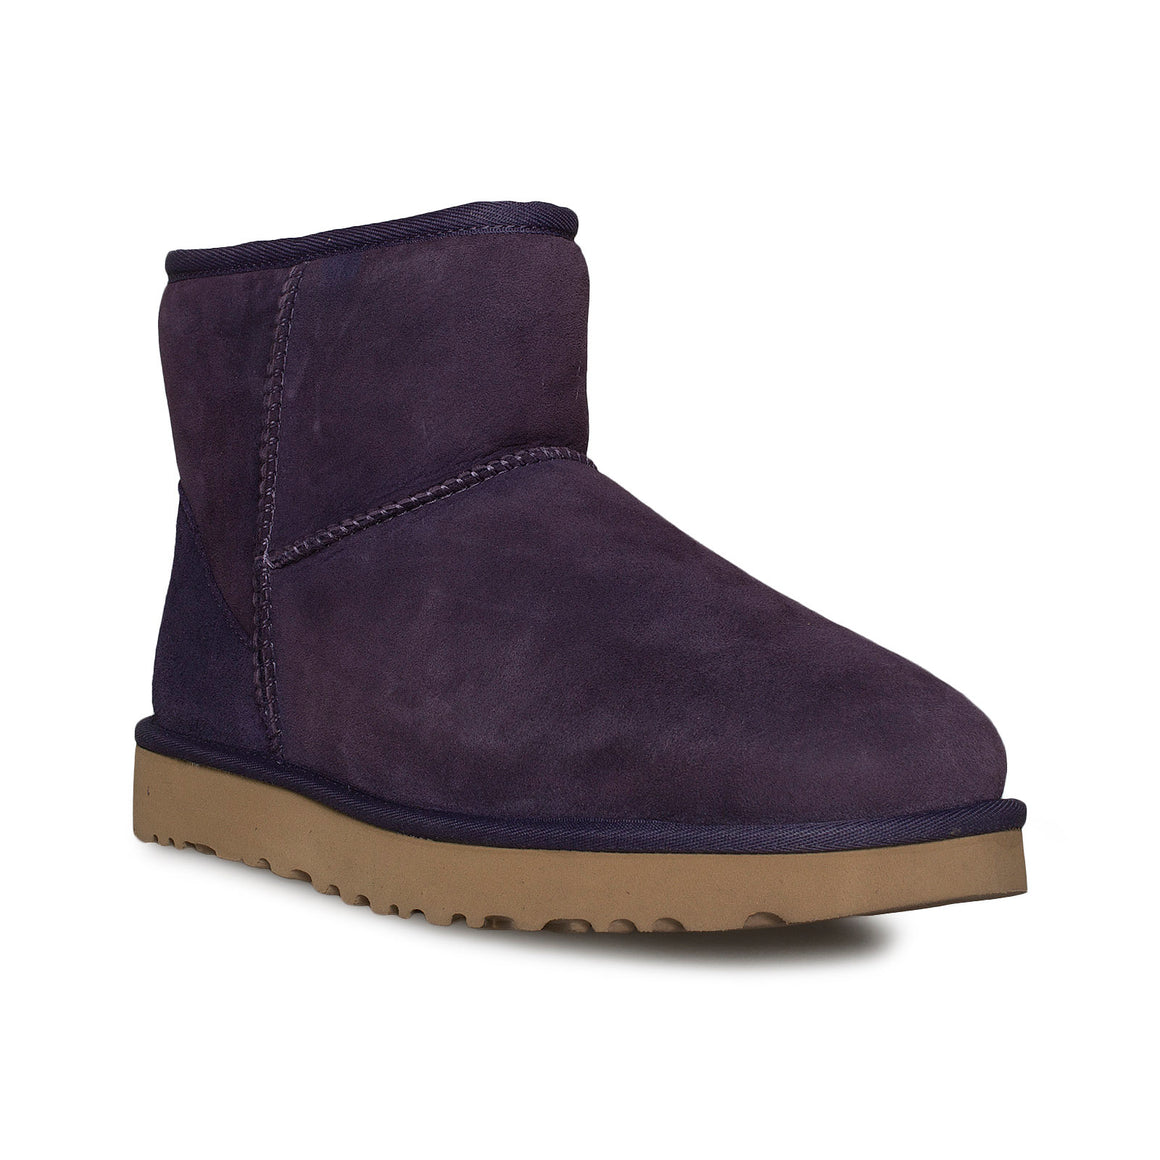 UGG Classic Mini II Midnight Purple Boots - Women's